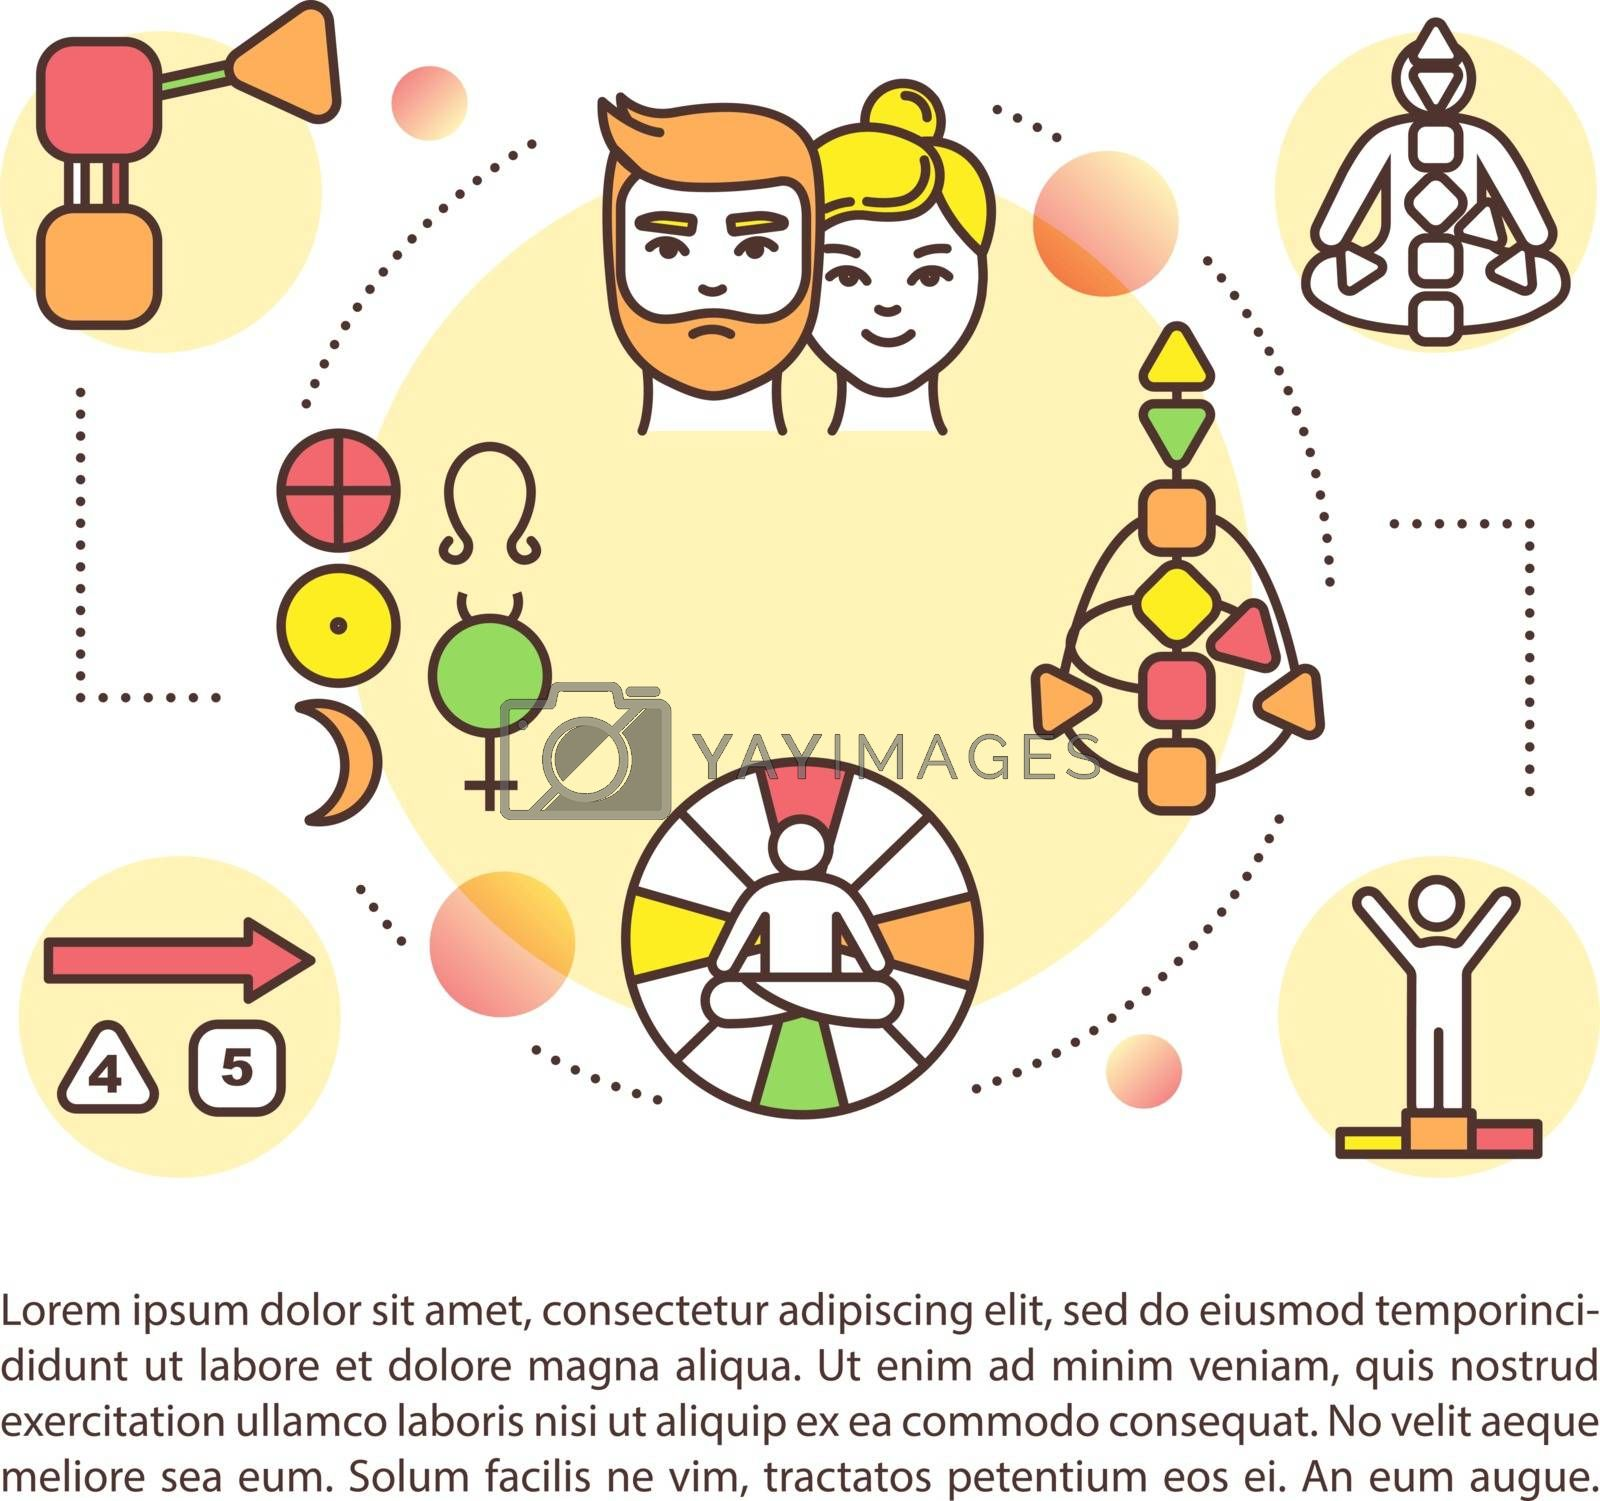 Body chart concept icon with text. Mandal for self understanding. Spirituality and human design. PPT page vector template. Brochure, magazine, booklet design element with linear illustrations